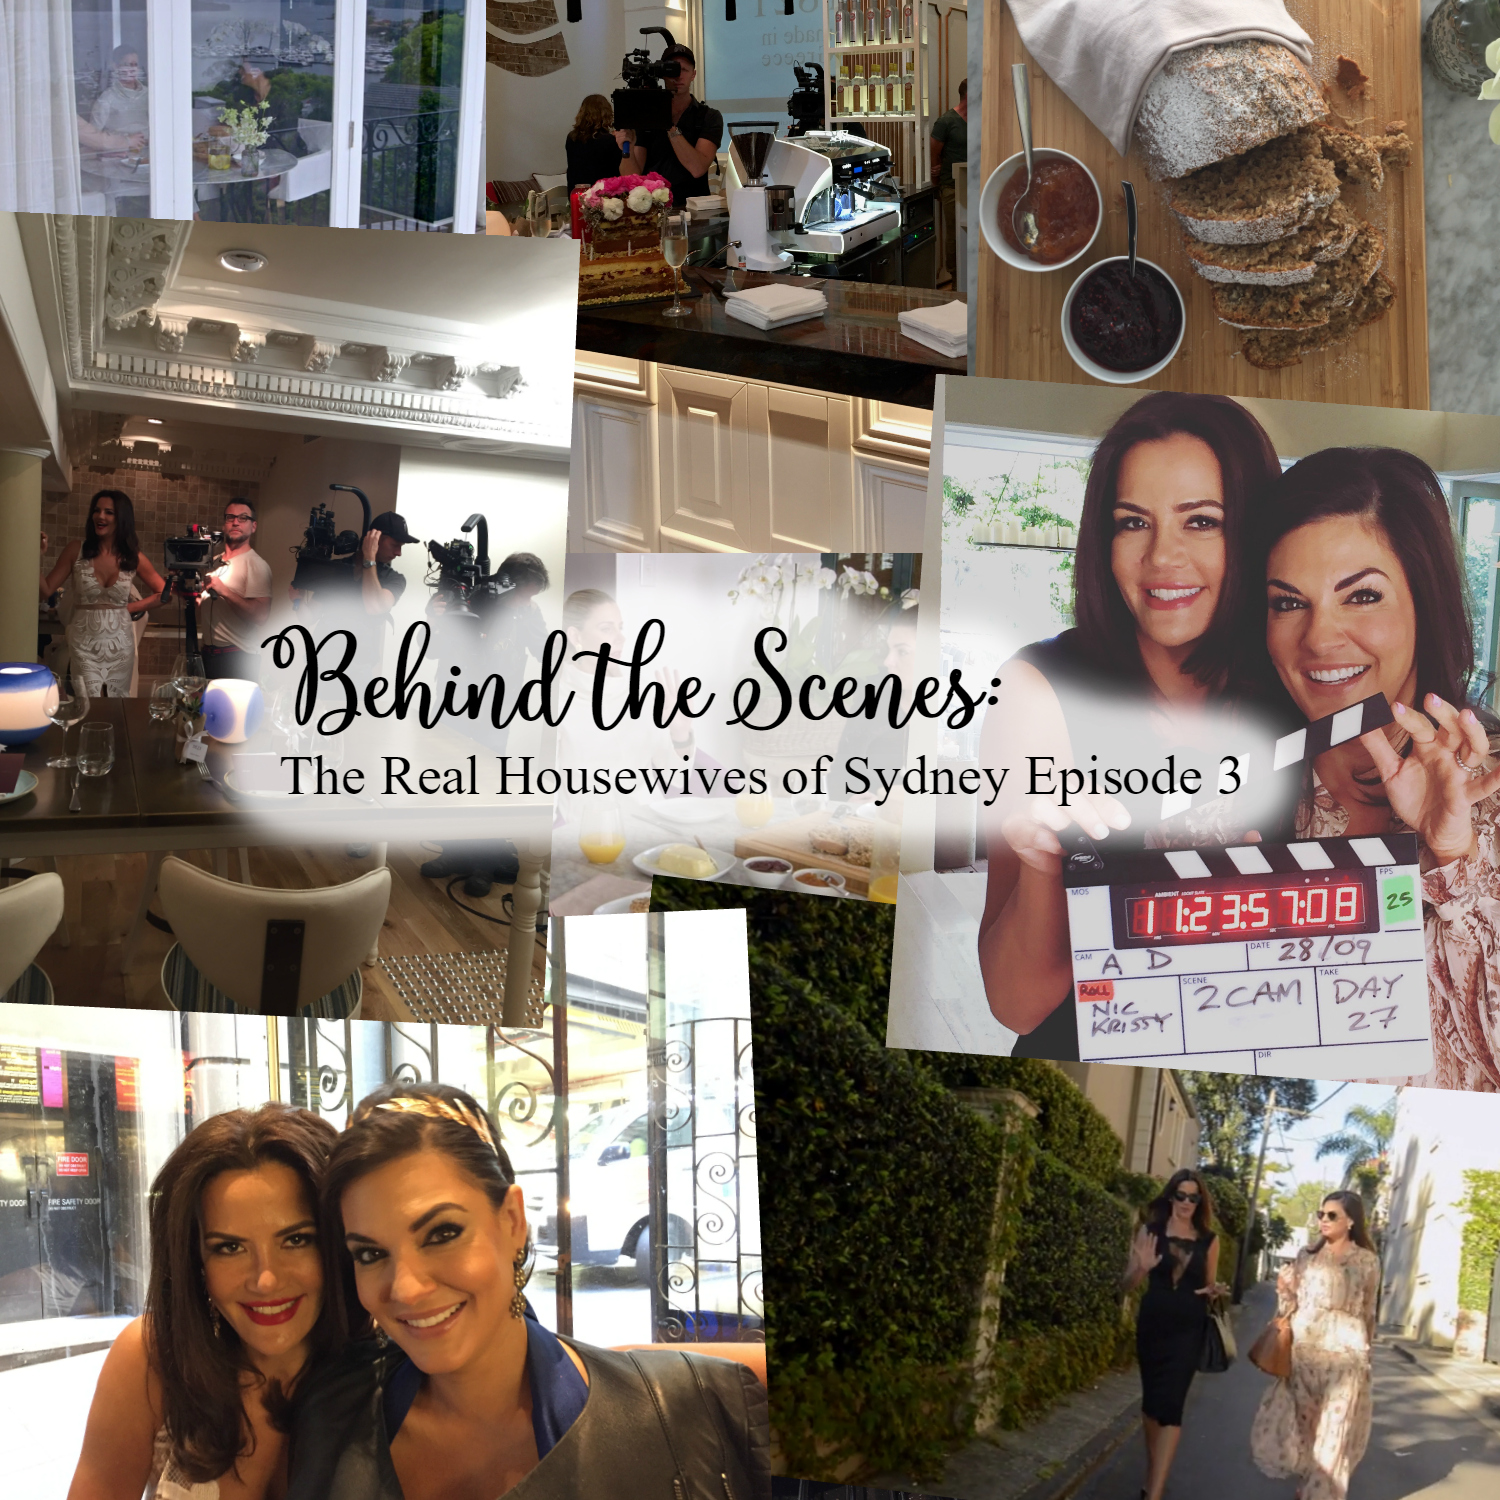 Behind the Scenes of The Real Housewives of Sydney Episode 3 Season 1  - Nicole O'Neil